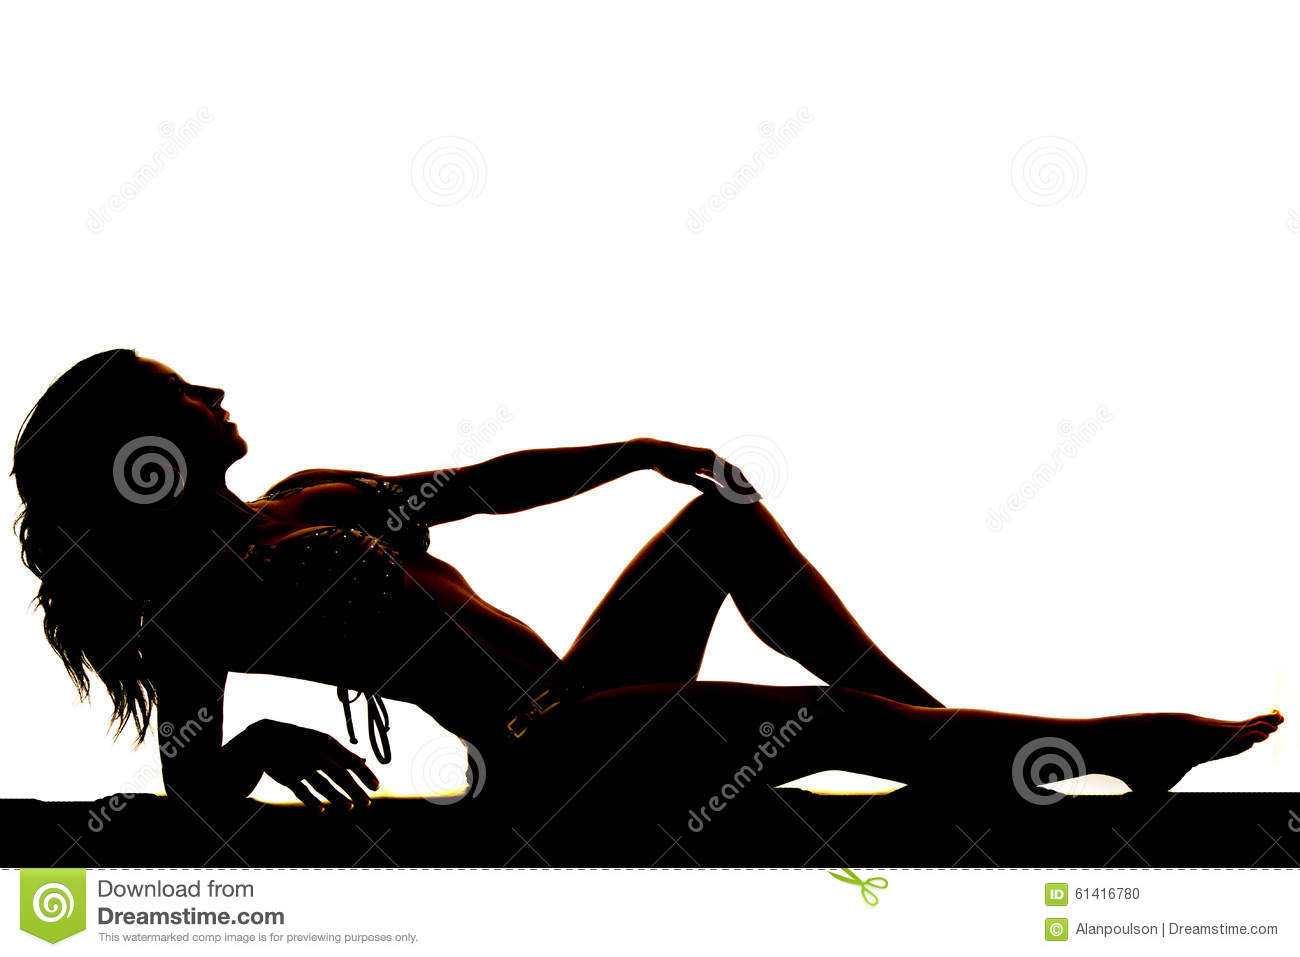 Silhouette of a woman in a bikini lay back black and white